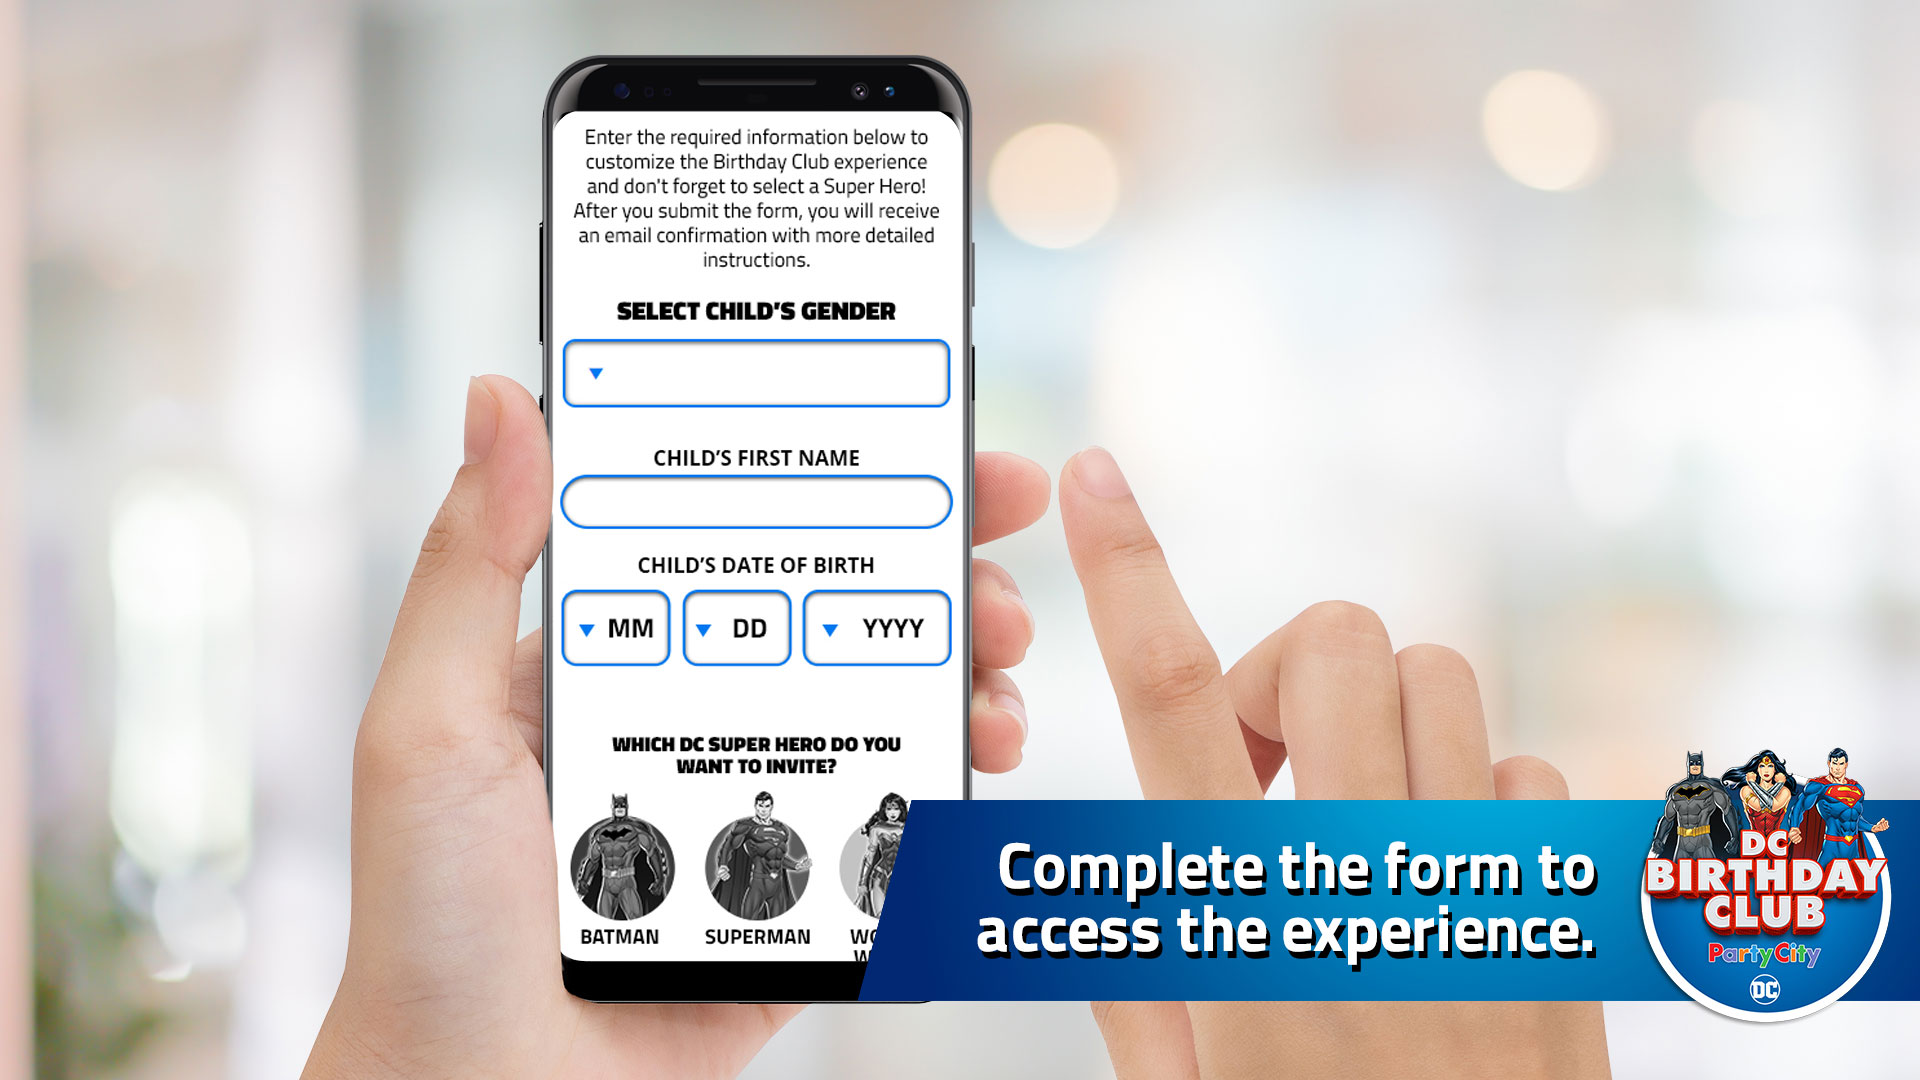 Complete the form to access the experience.